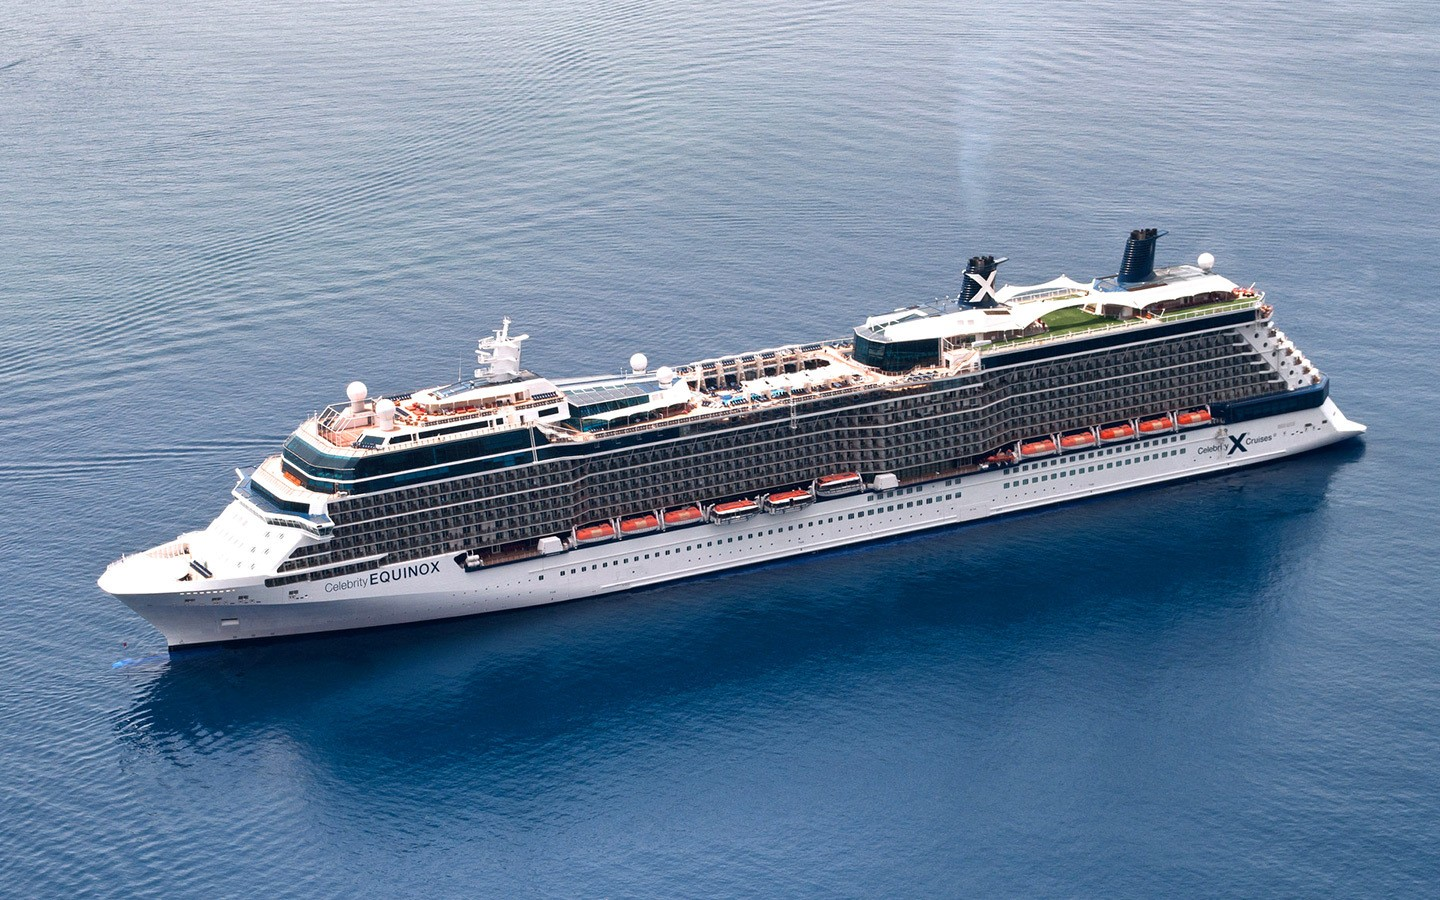 Celebrity Equinox cruise ship, reviewed